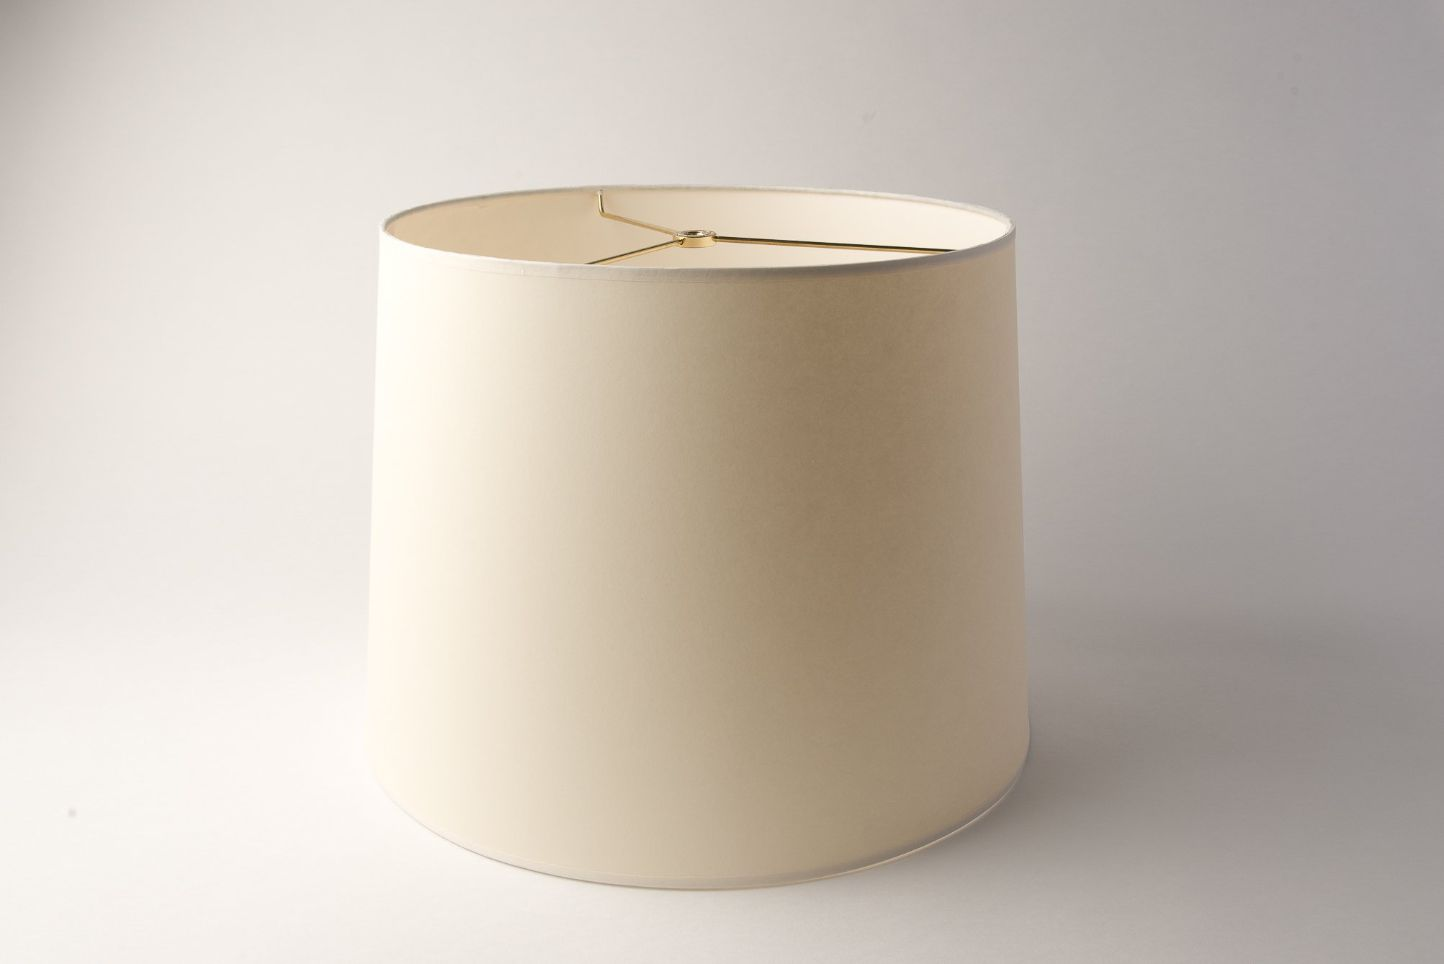 https://www.hotel-lamps.com/resources/assets/images/product_images/short_drum_off_white_paper.jpg